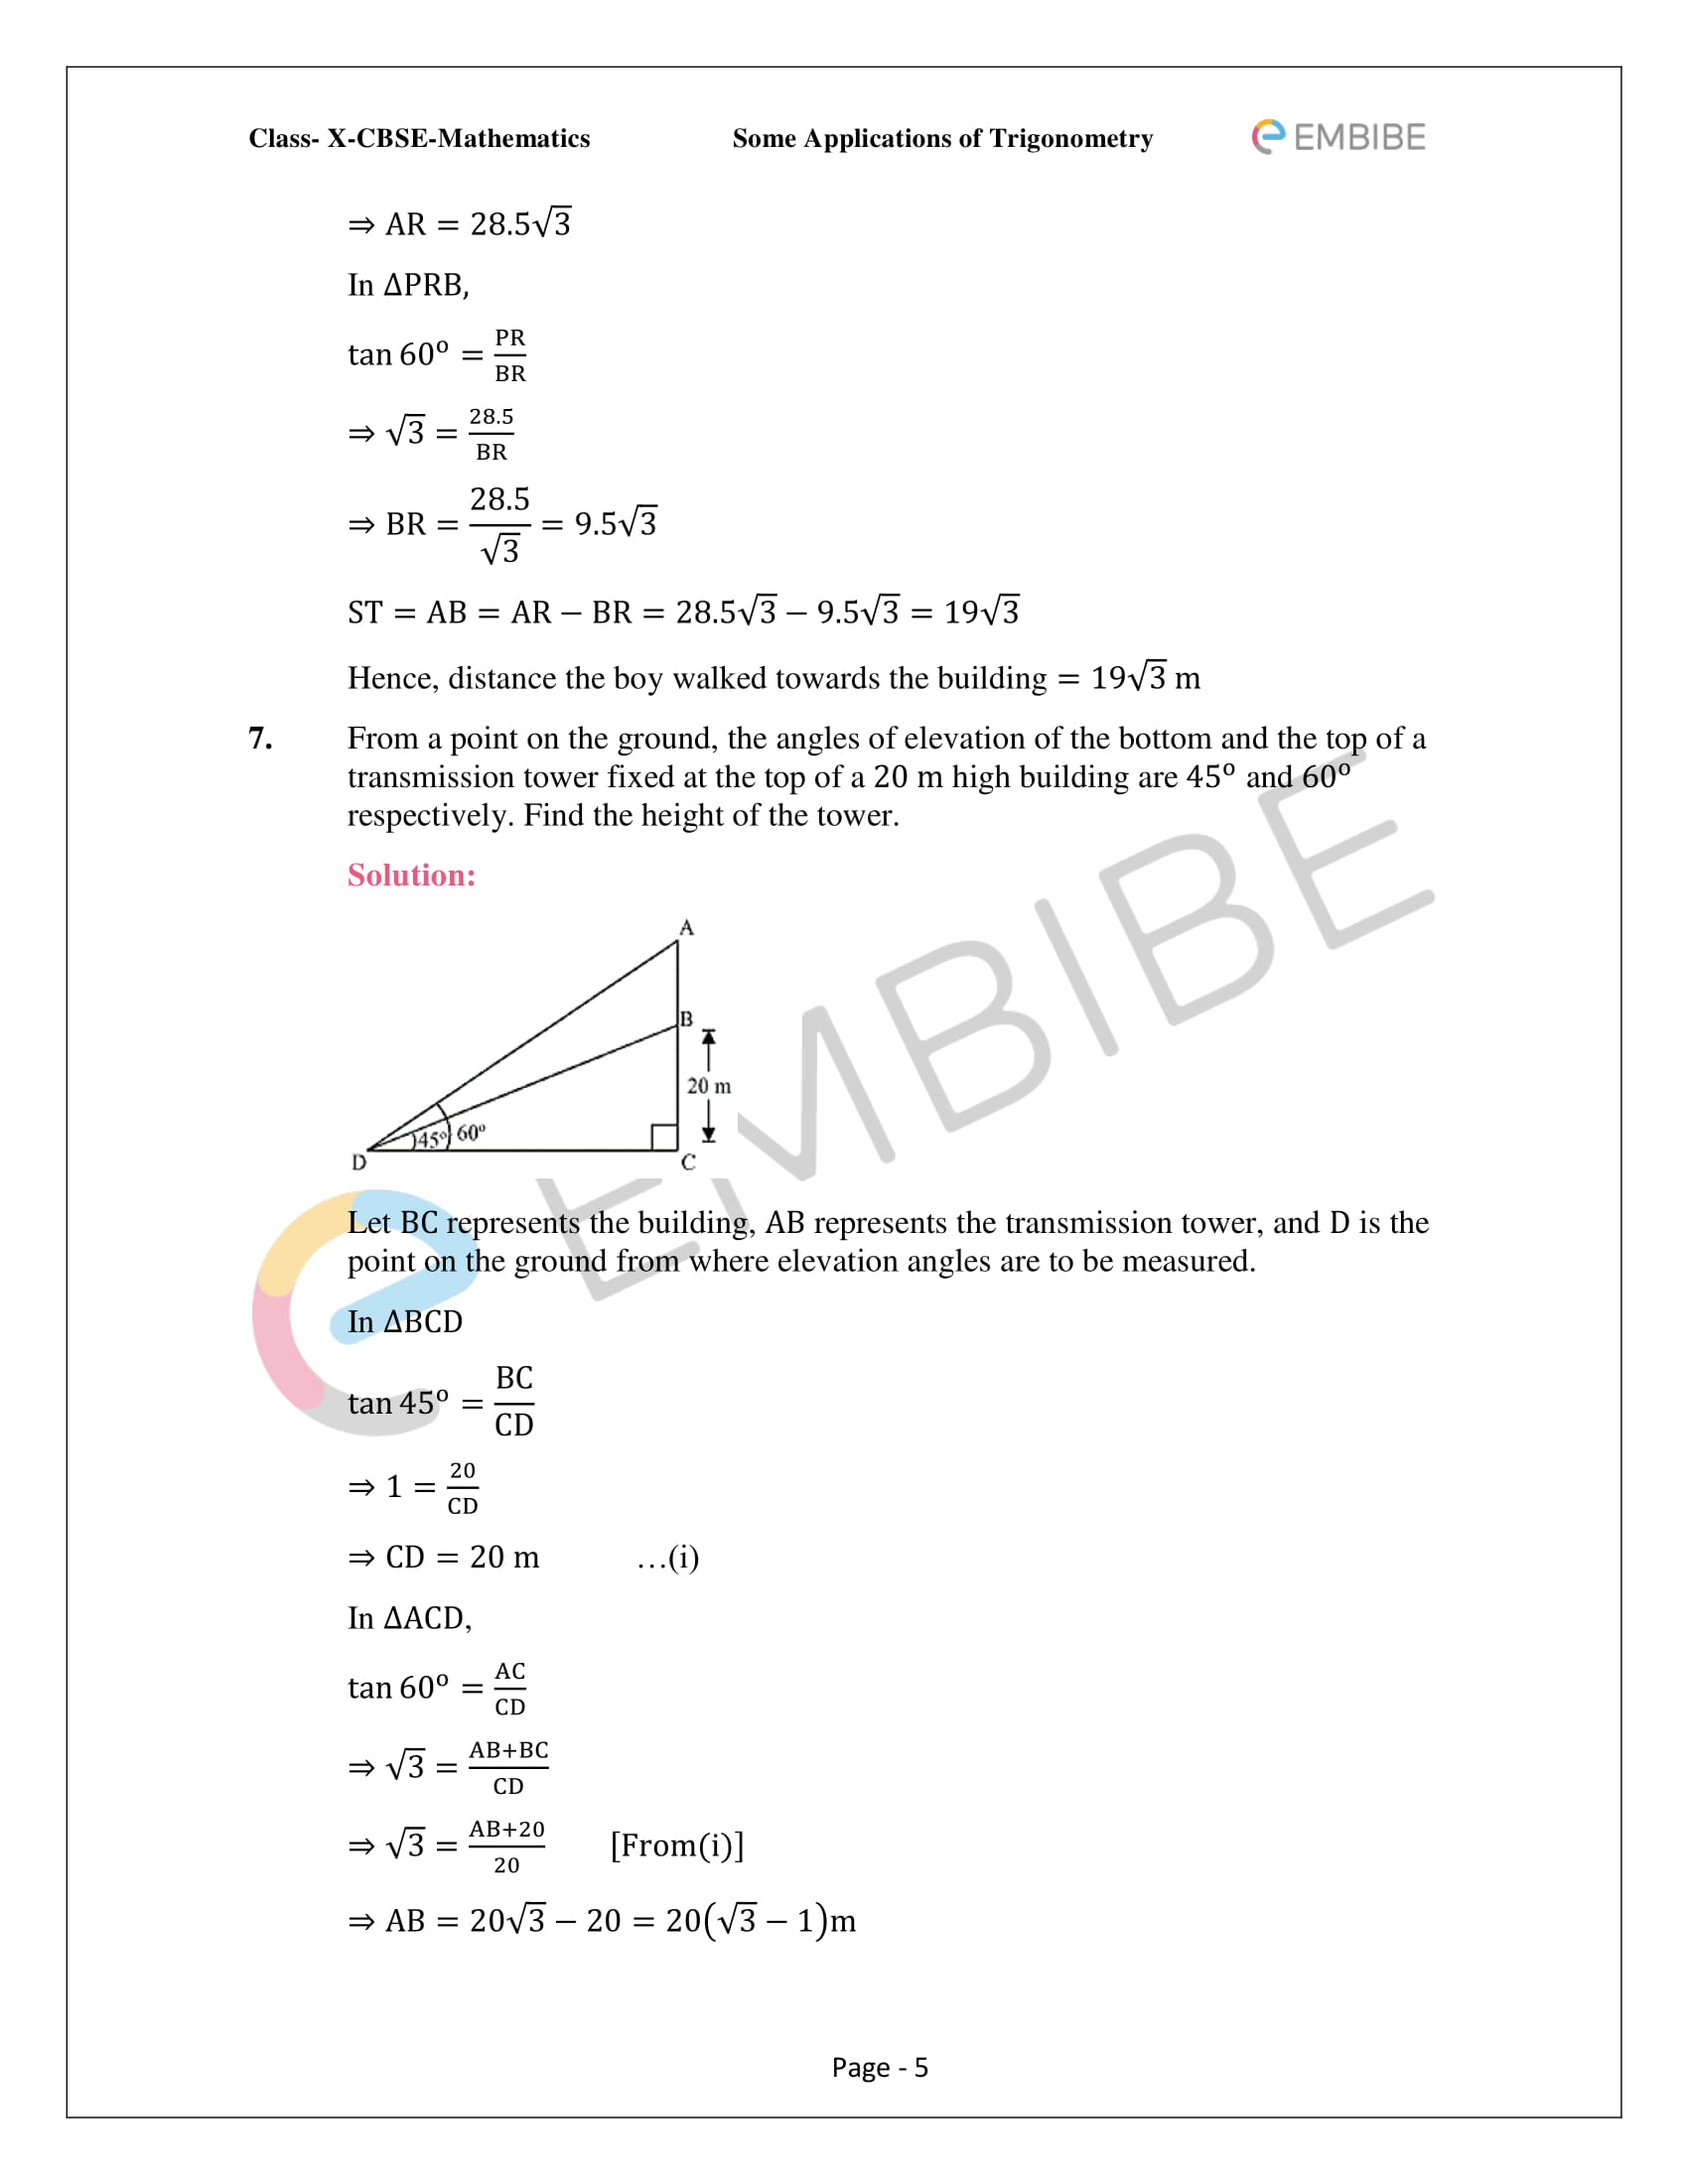 CBSE NCERT Solutions For Class 10 Maths Chapter 9 –Introduction To Trigonometry - 5